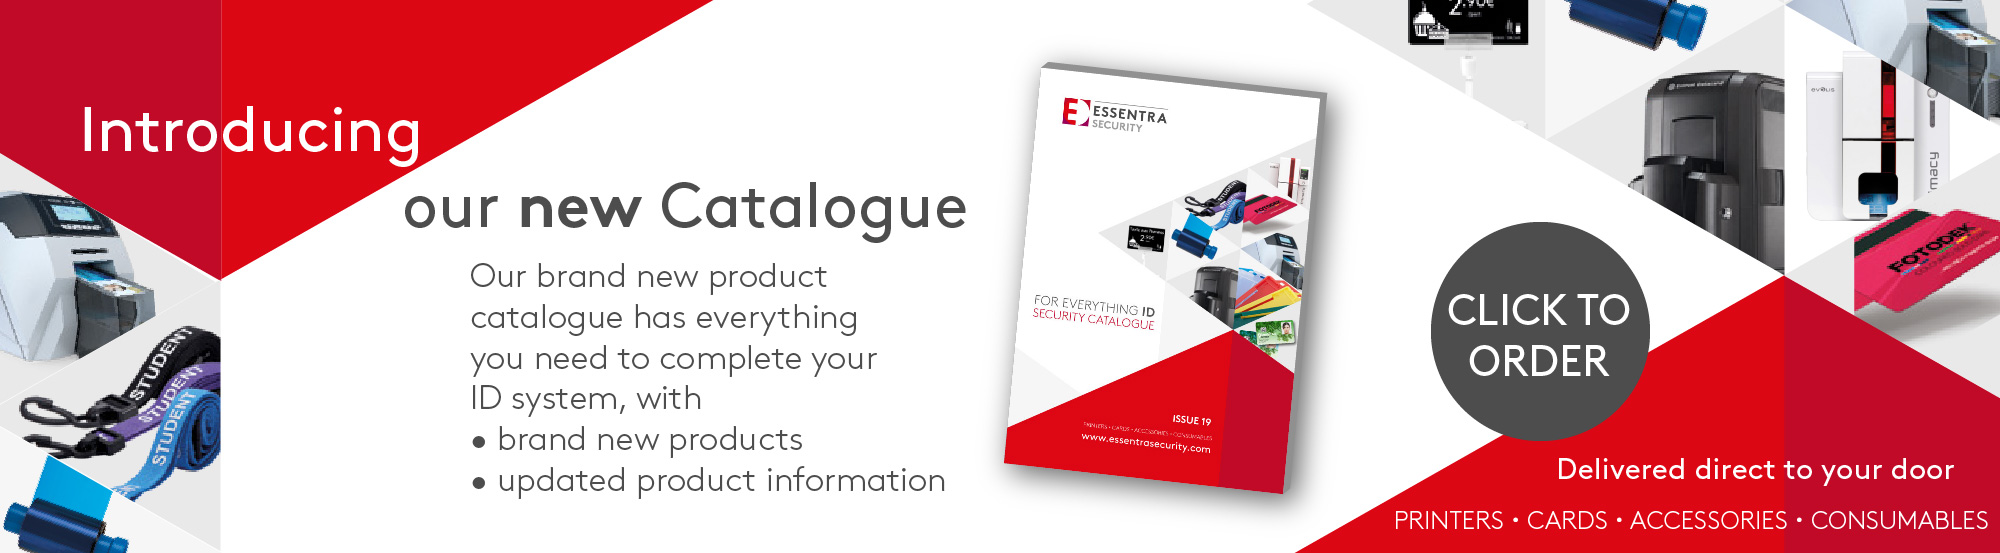 Essentra security catalogue banner